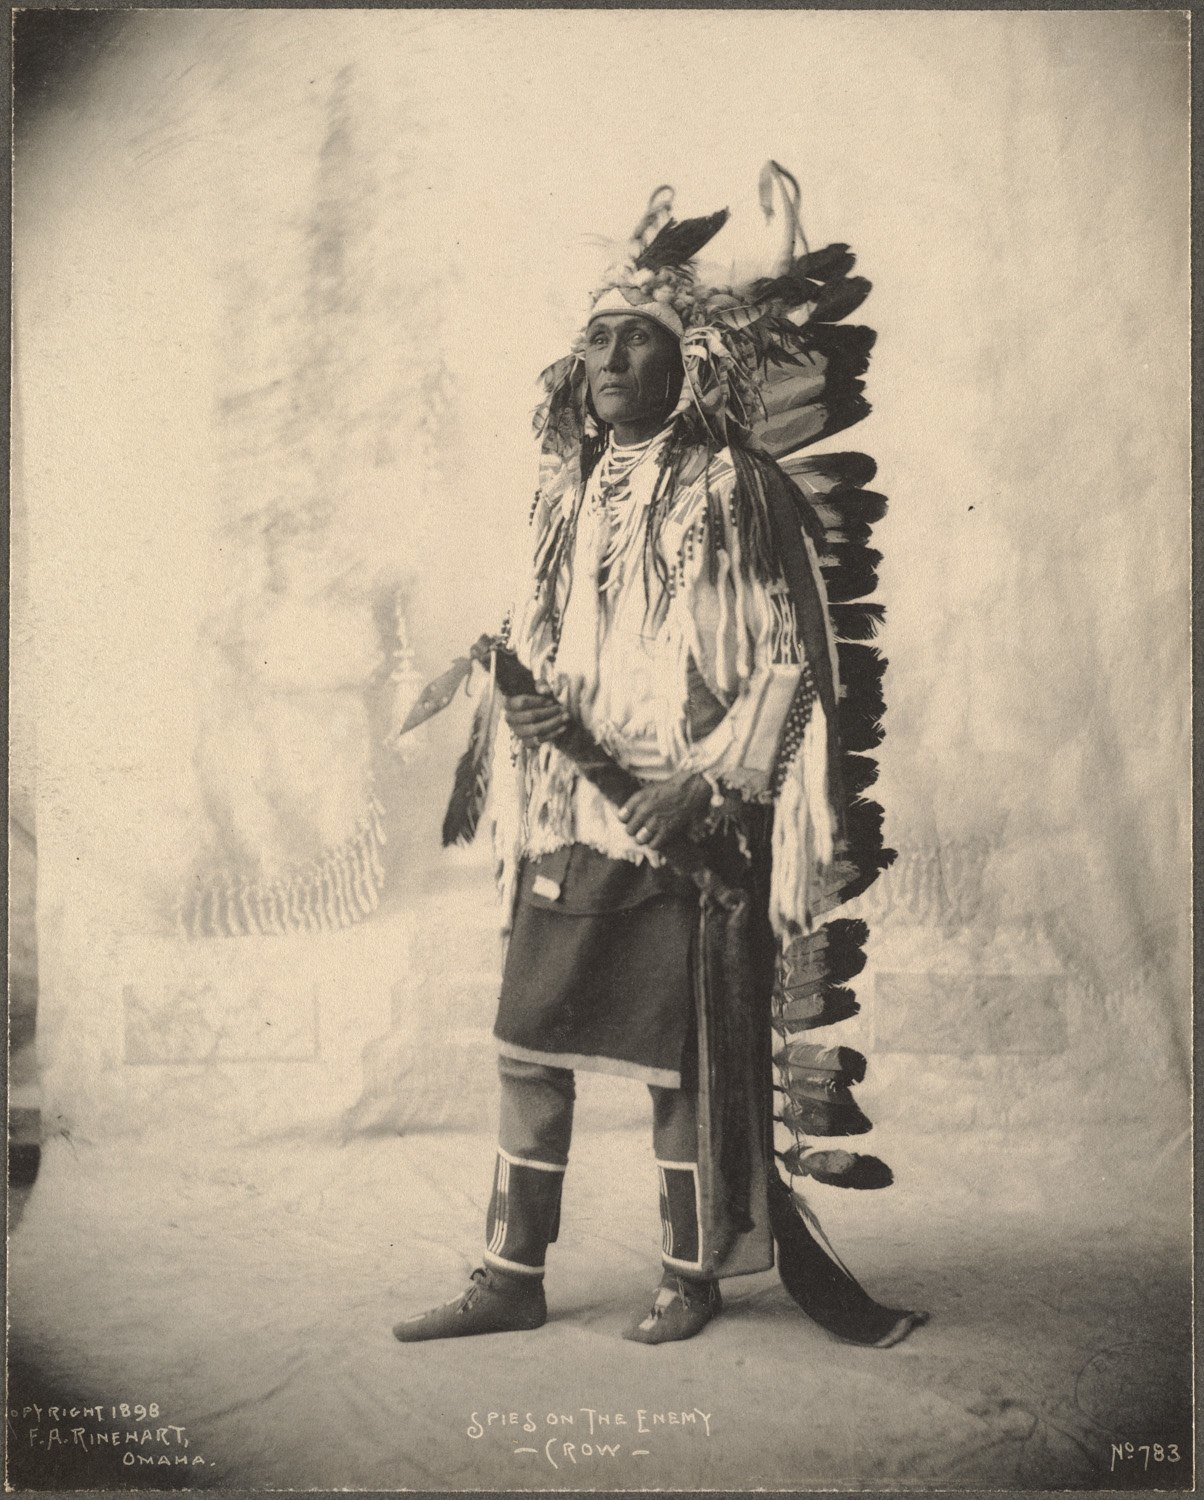 Spies On The Enemy, Crow, 1899. (Photo by Frank A. Rinehart)